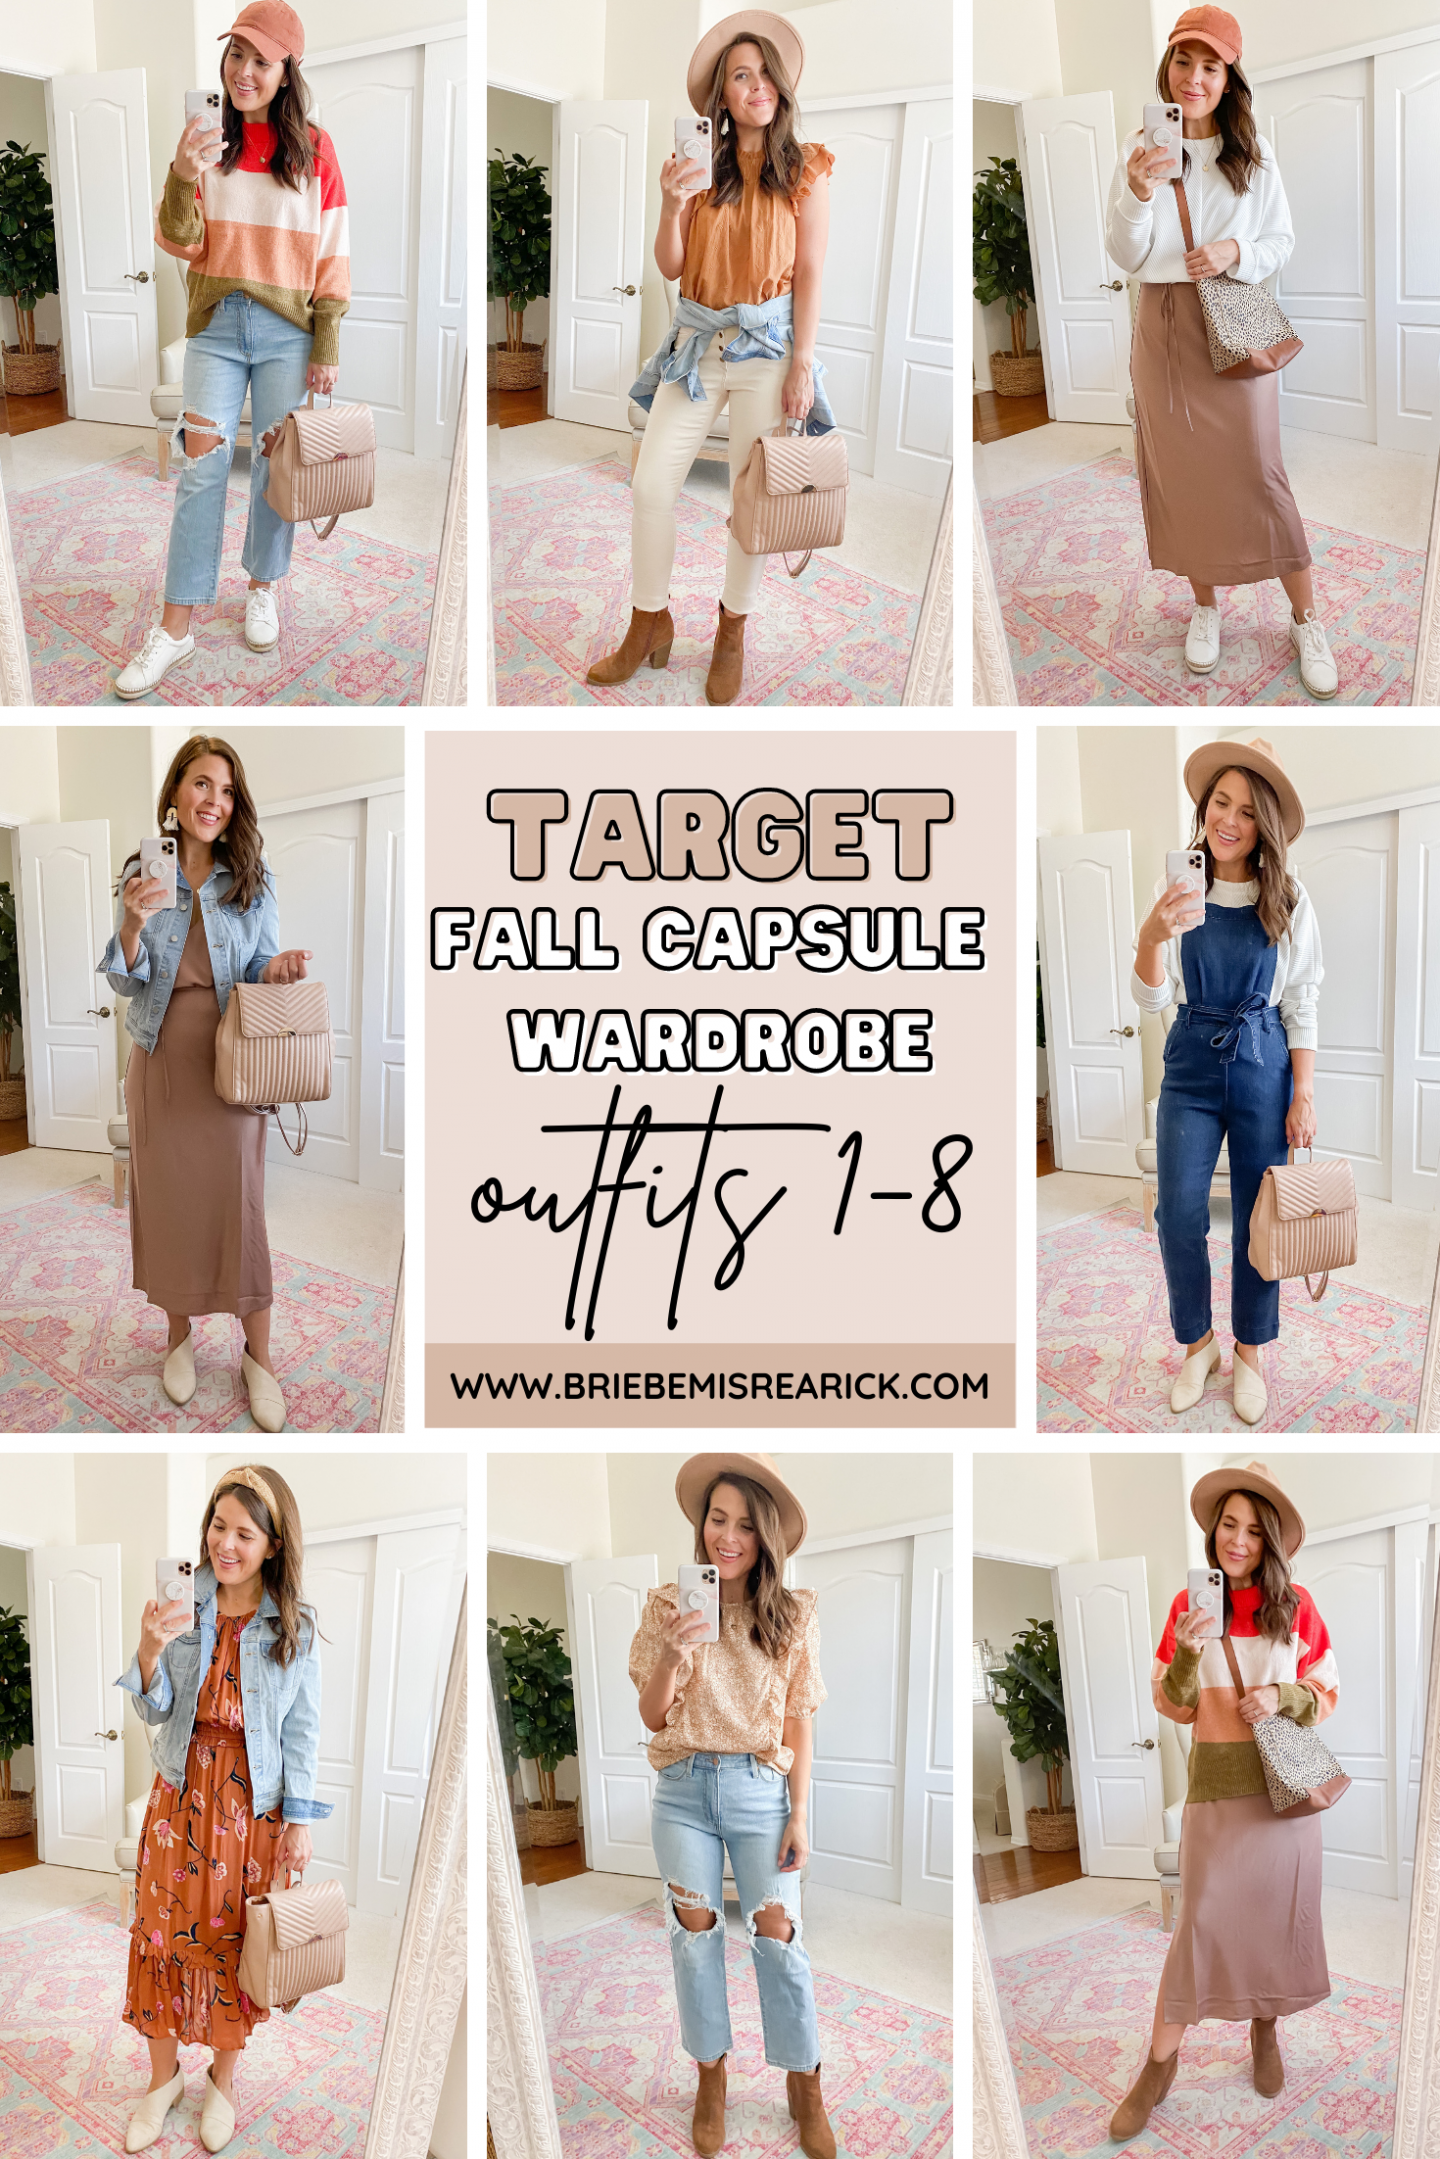 Target Fall Capsule Wardrobe: Outfits 1-8